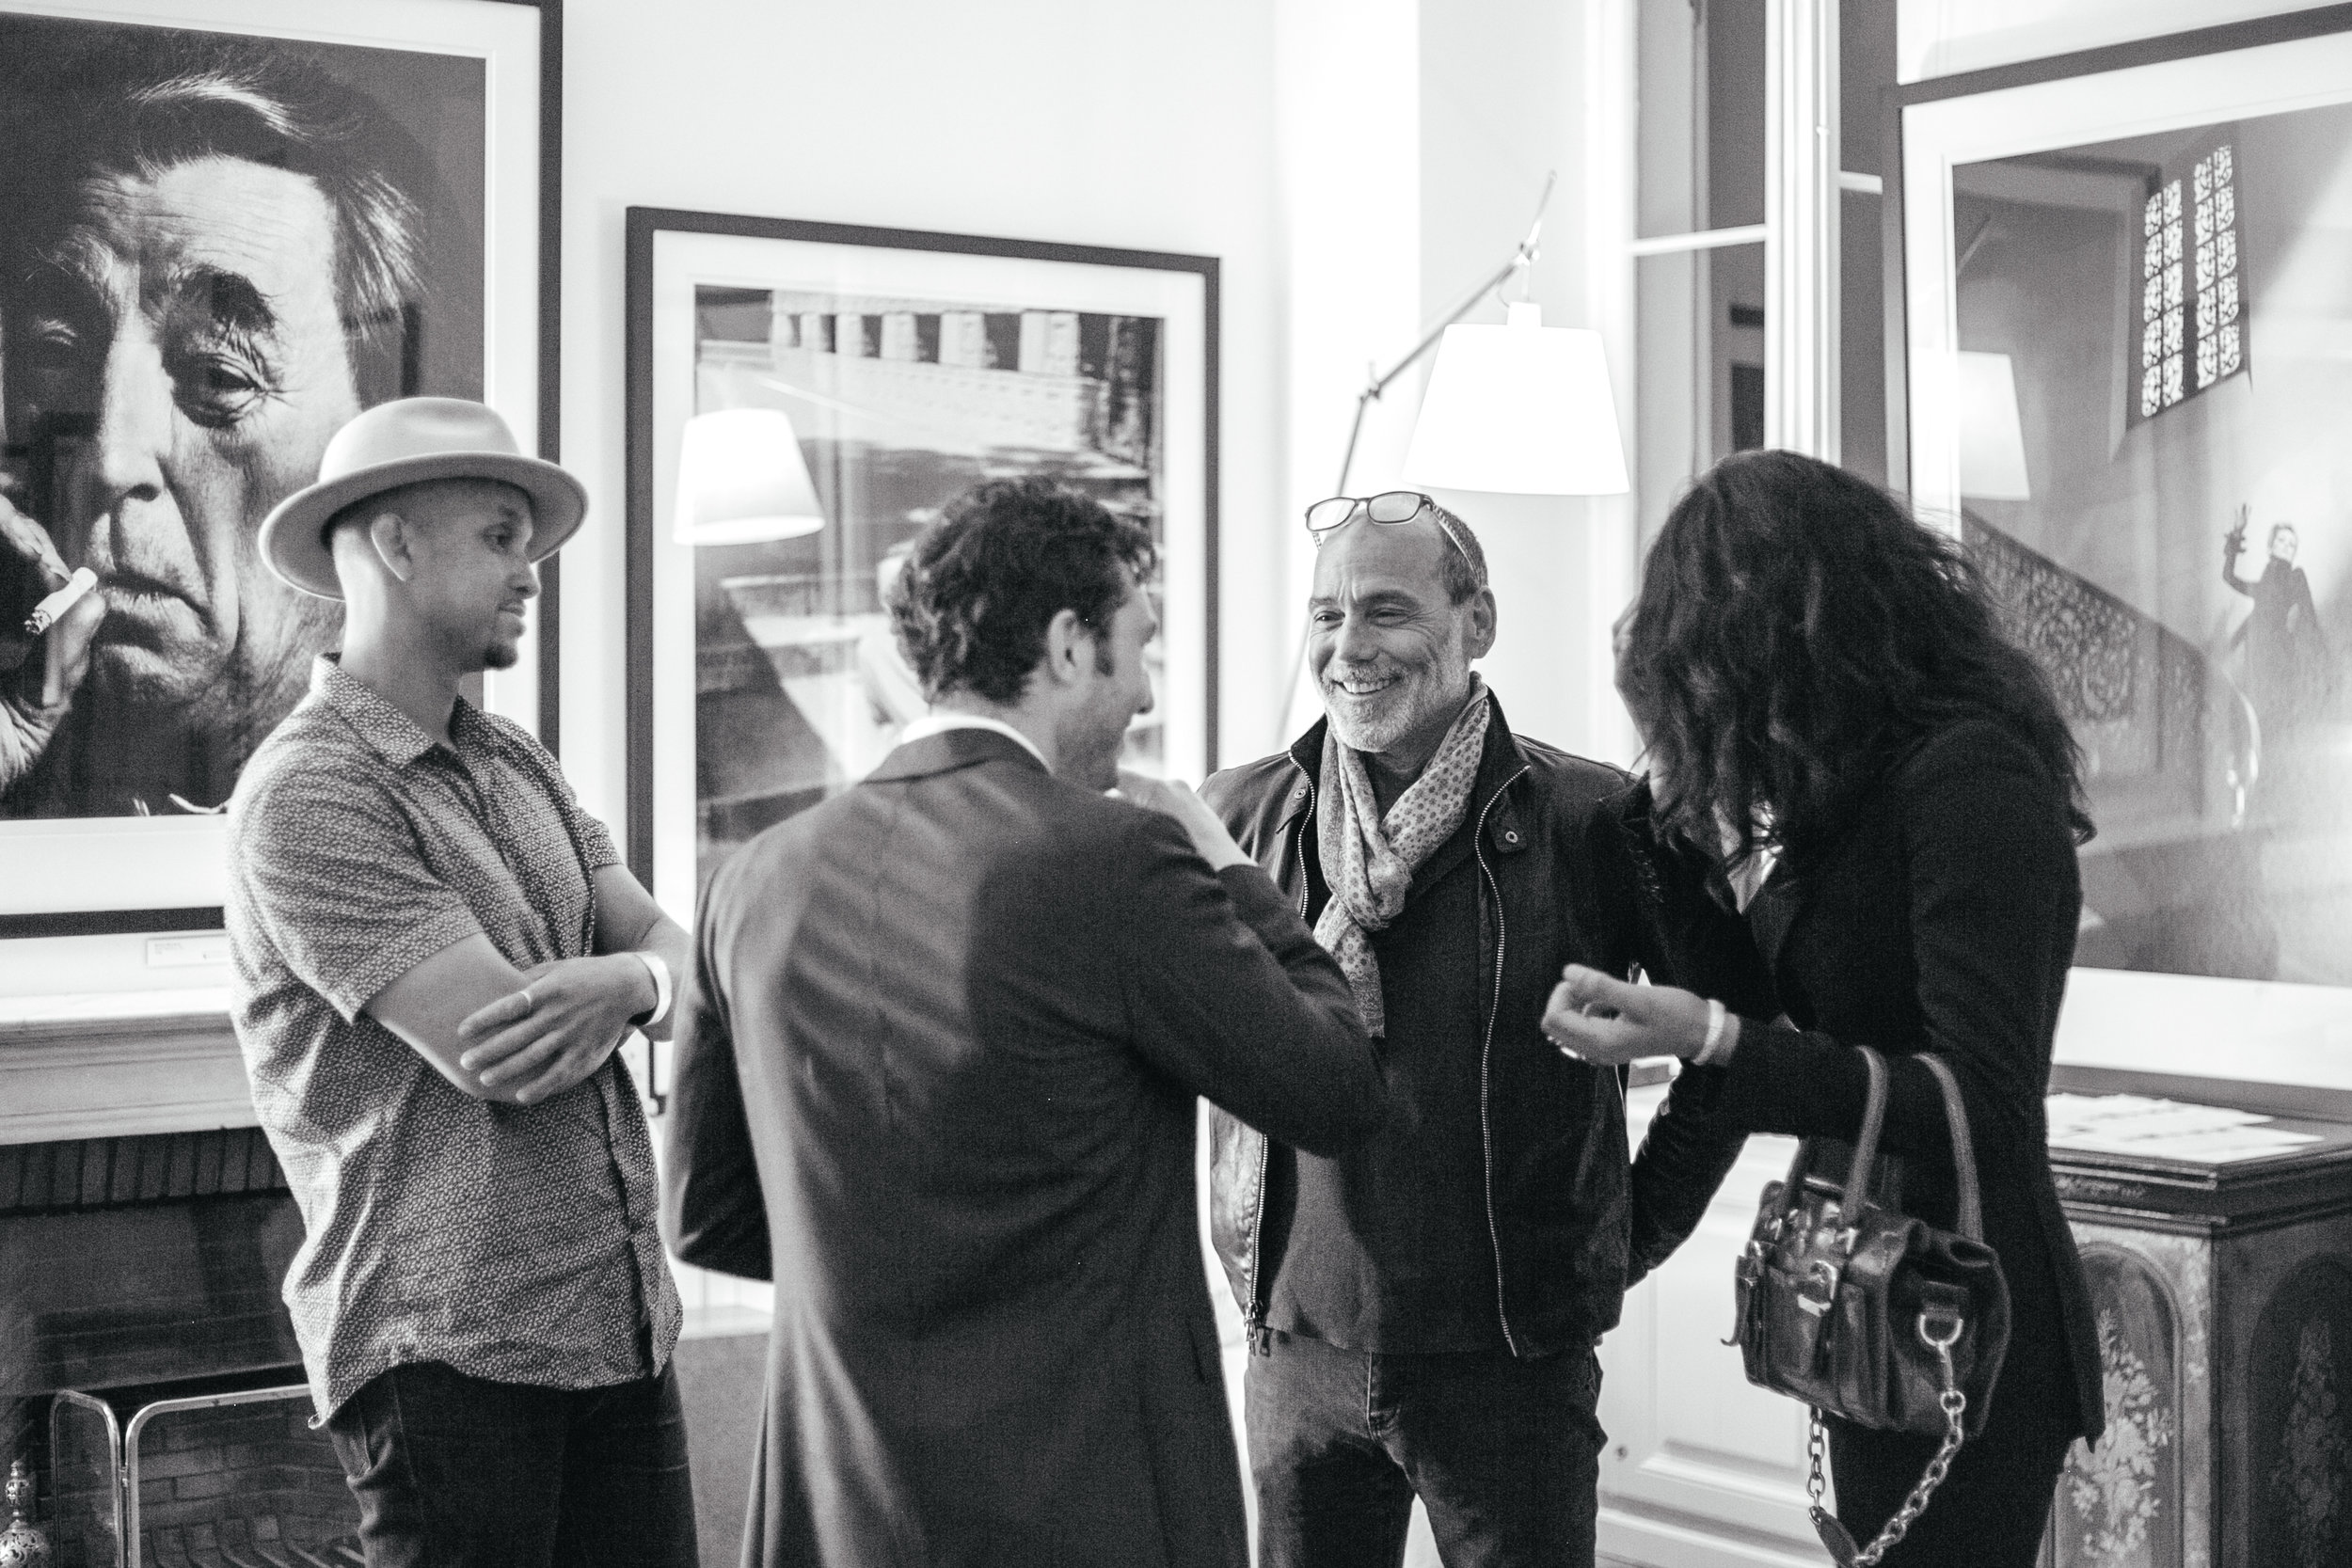 Timothy White Cannes Limited Print Photo Exhibition Opening